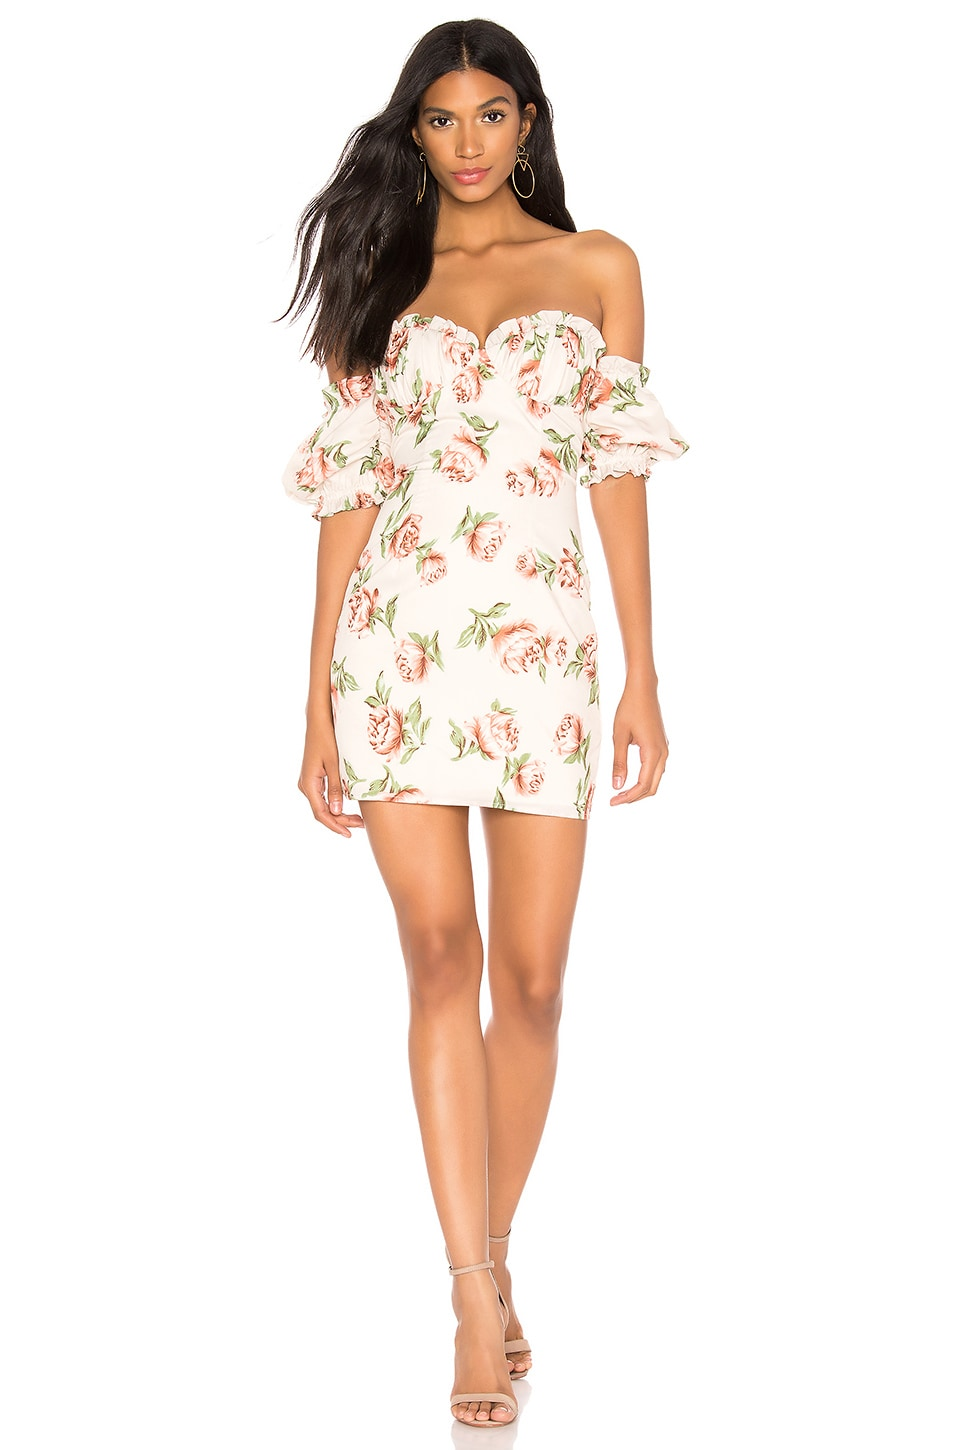 superdown Lou Bustier Frill Dress in Nude Floral